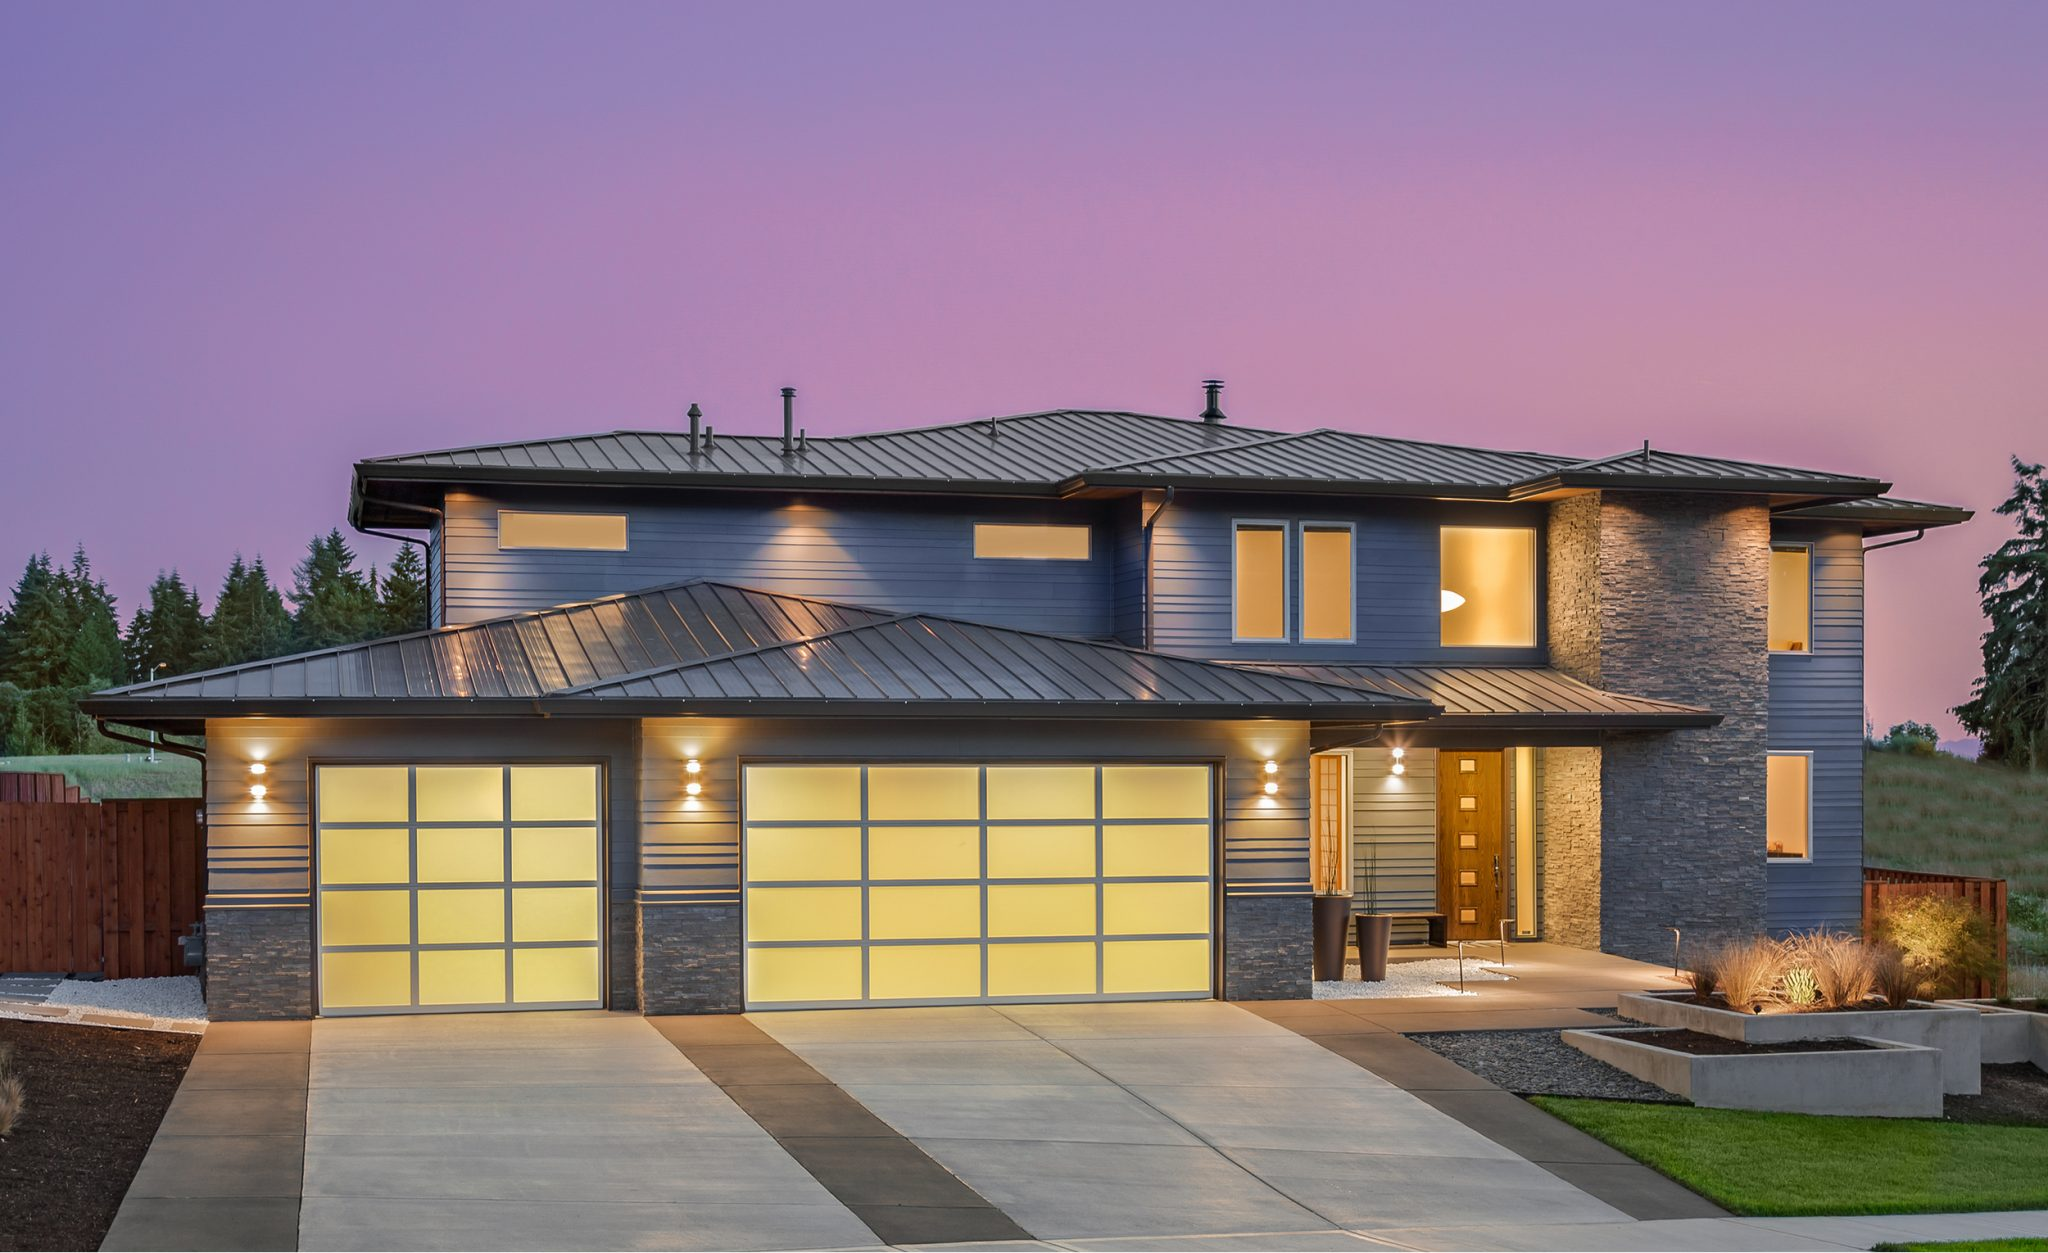 Driveway Designs for Modern Home Concrete Banding